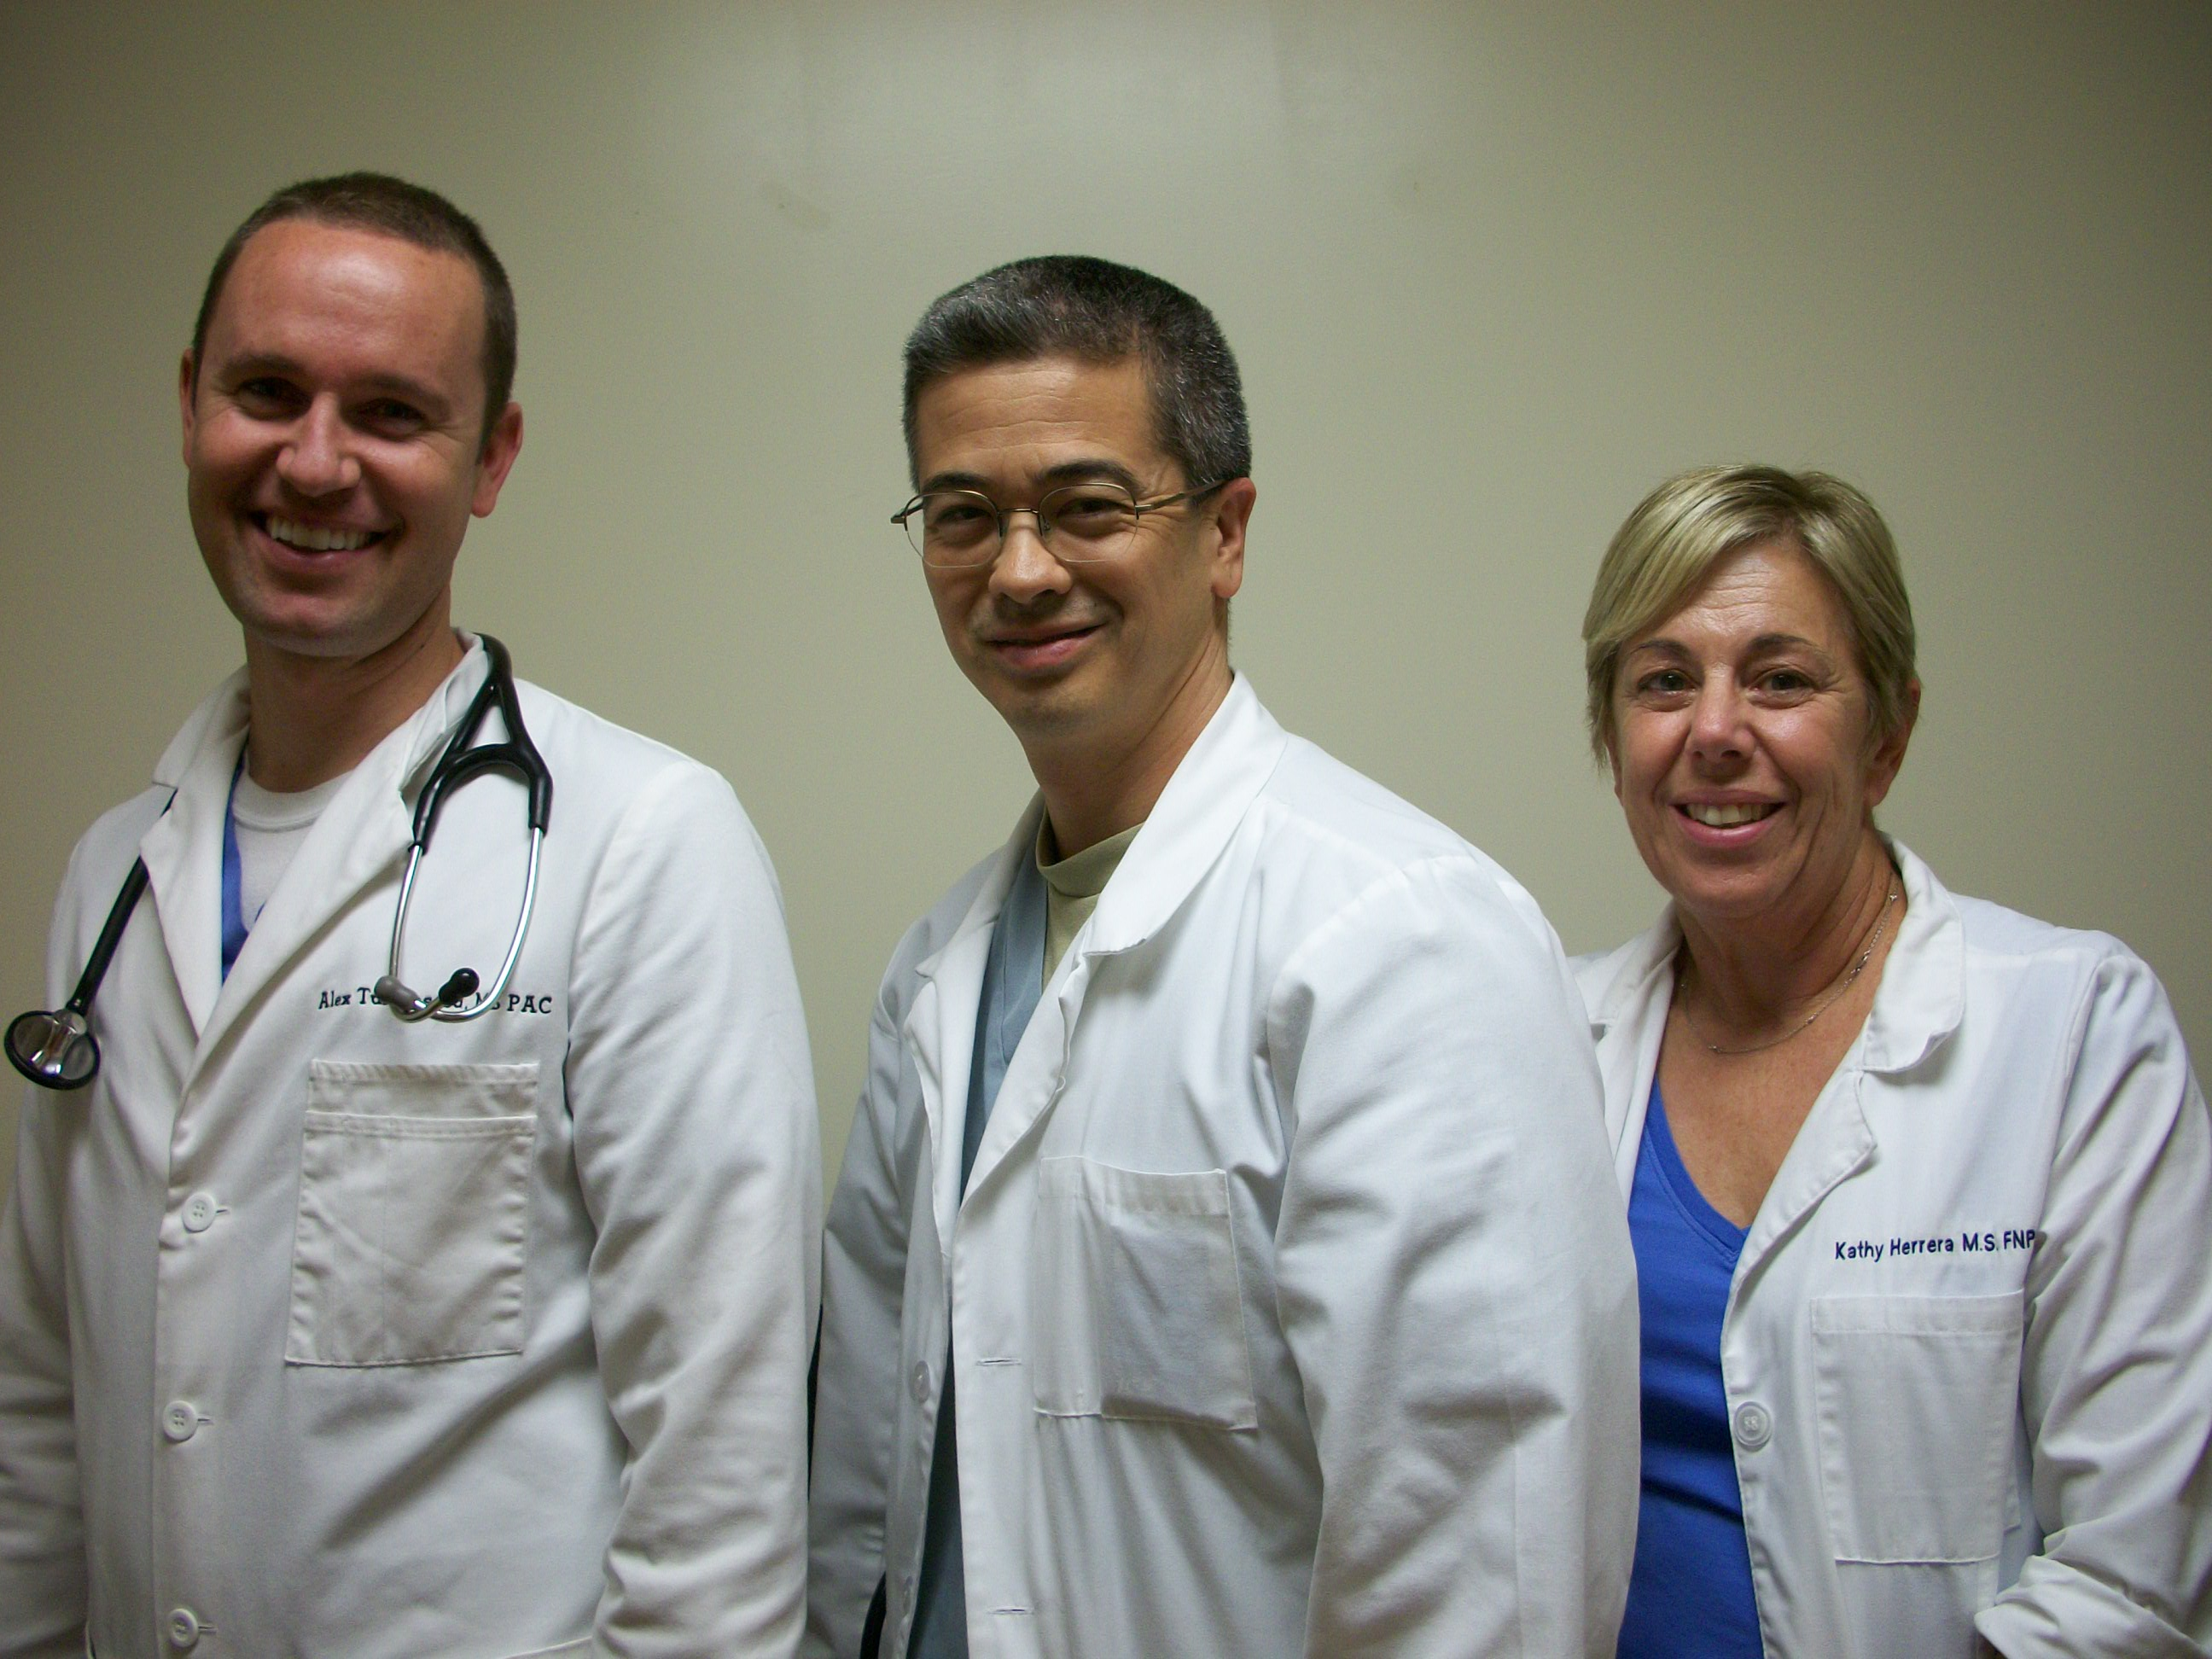 Lewis, Dennis P, Md - Scv Quality Care in Valencia, CA, photo #2